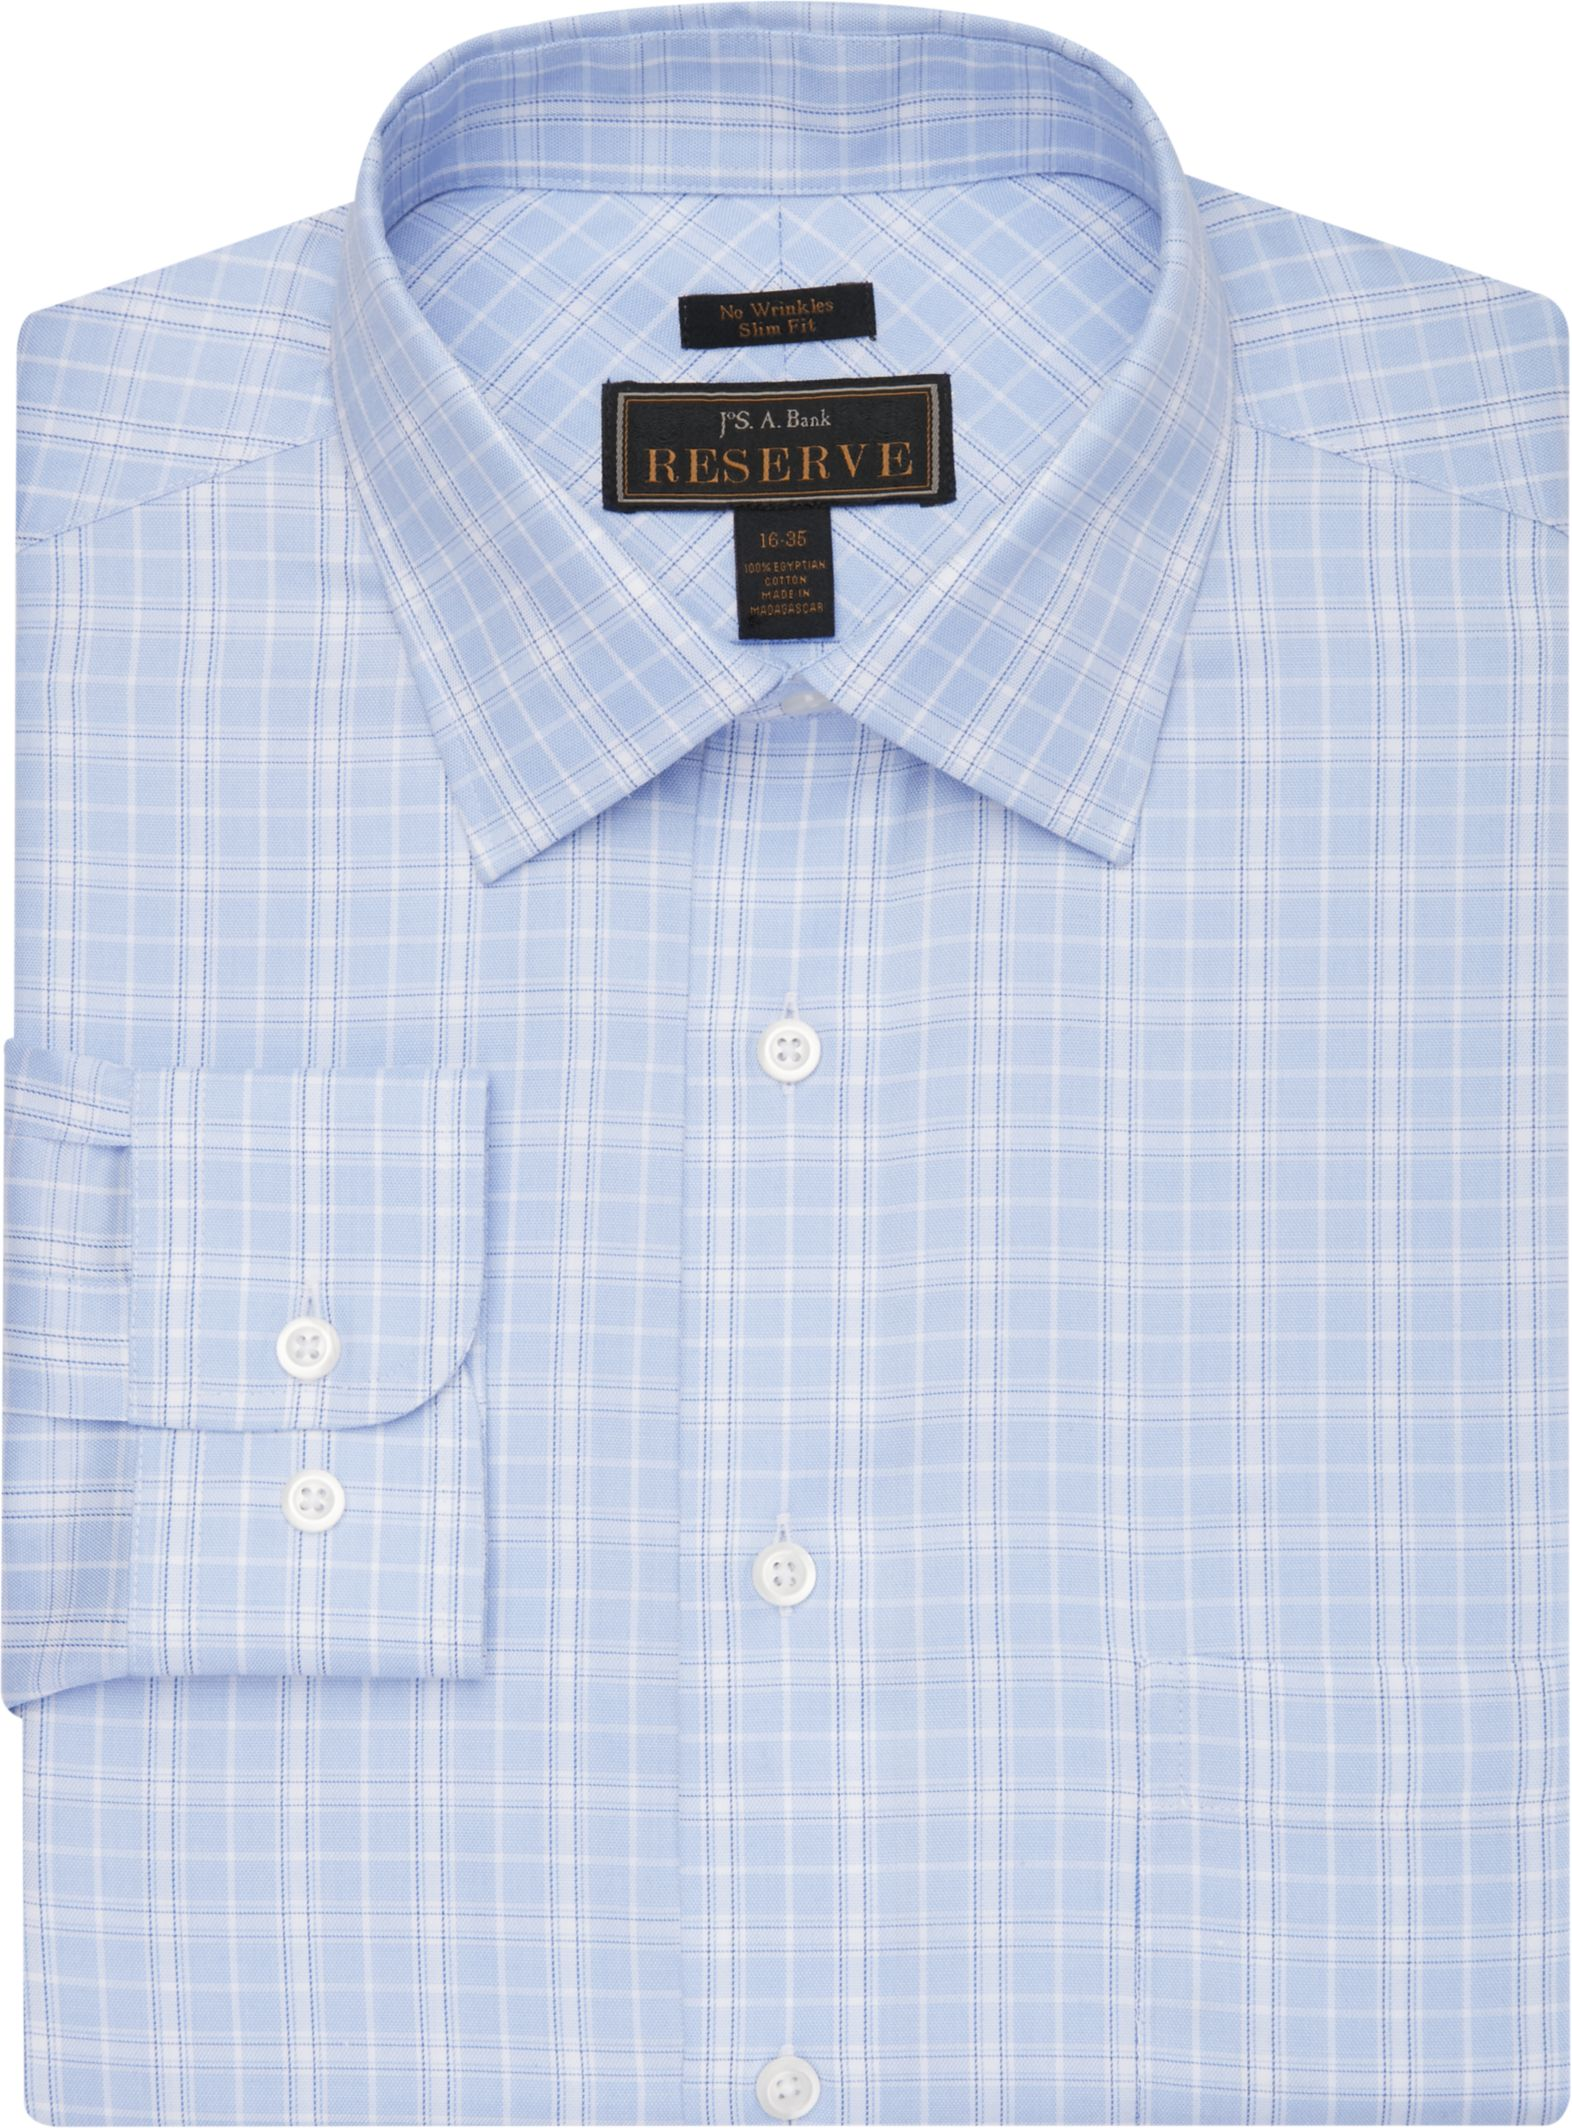 Details about  /Cooper /& Stewart Classic Fit Non-Iron Neat Check Spread Collar Dress Shirt Blue